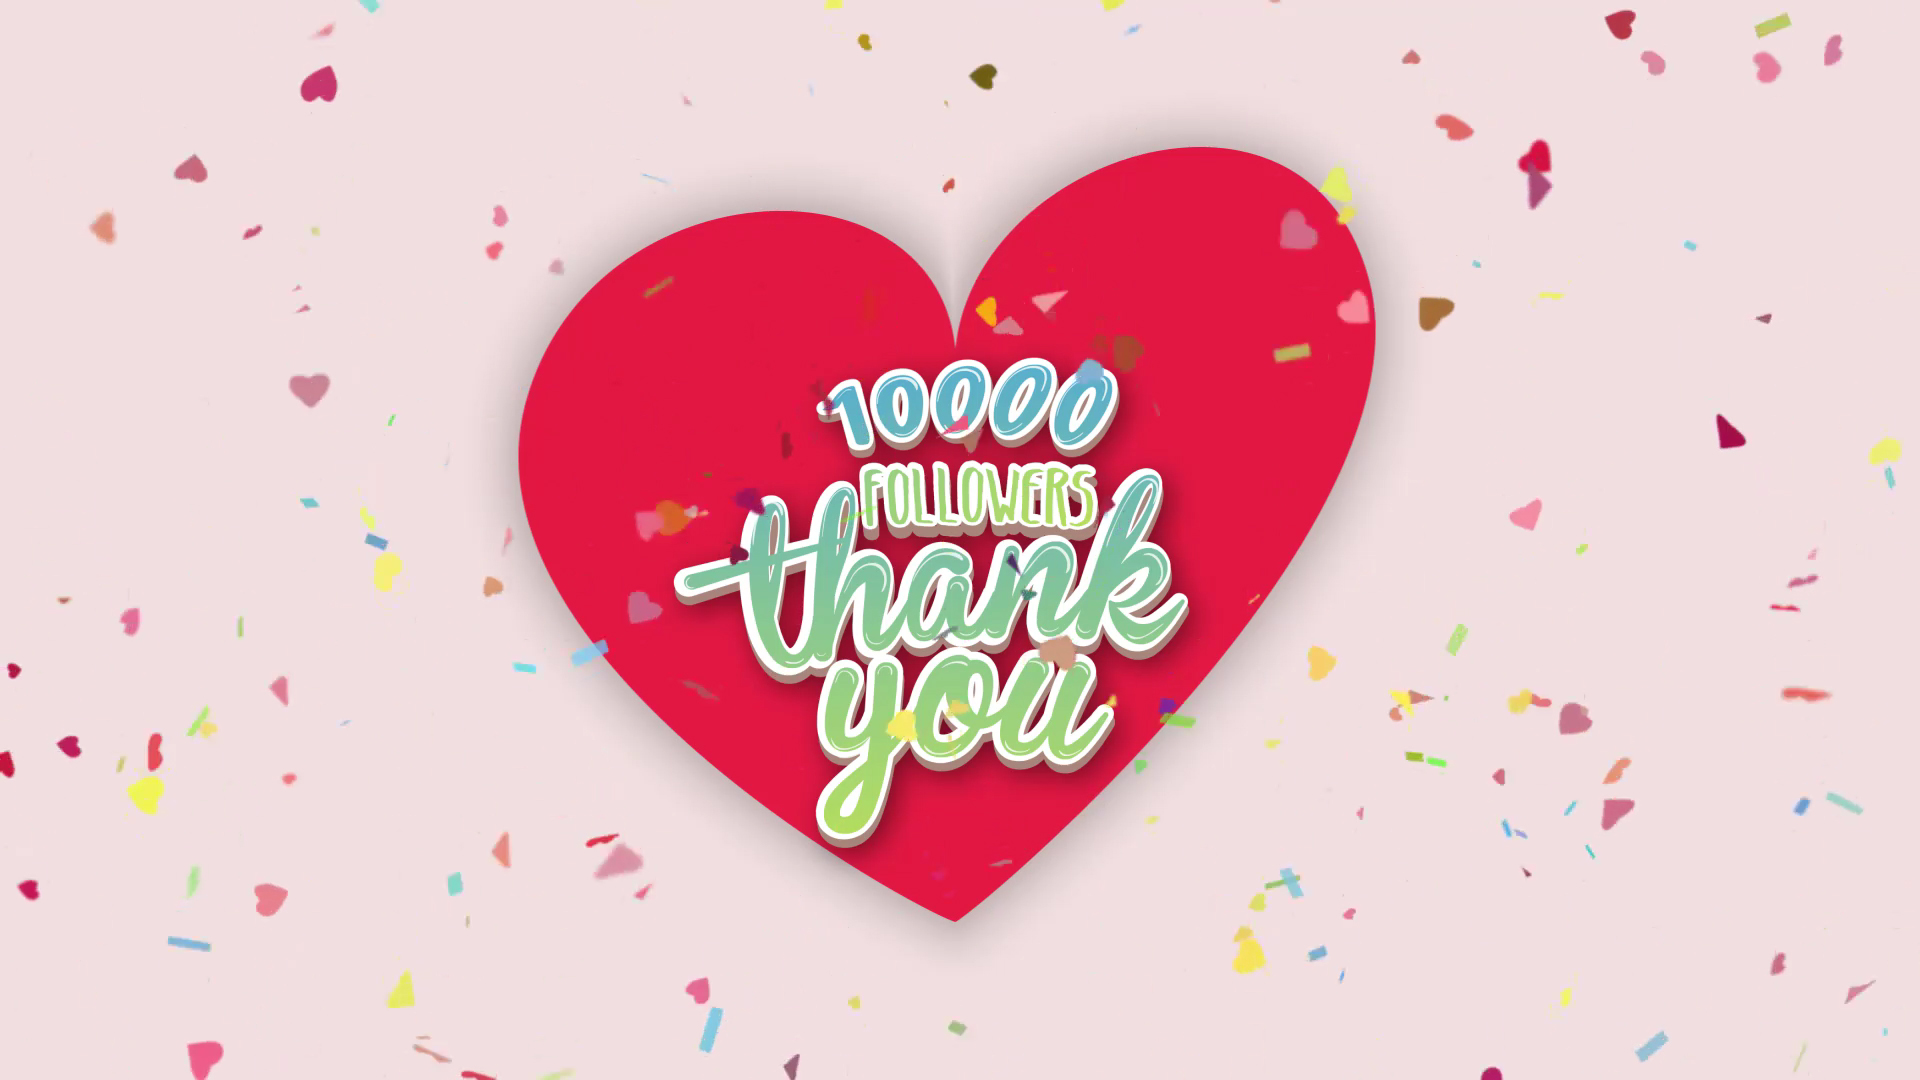 10K Followers Thank You Motion Graphic with Heart shape